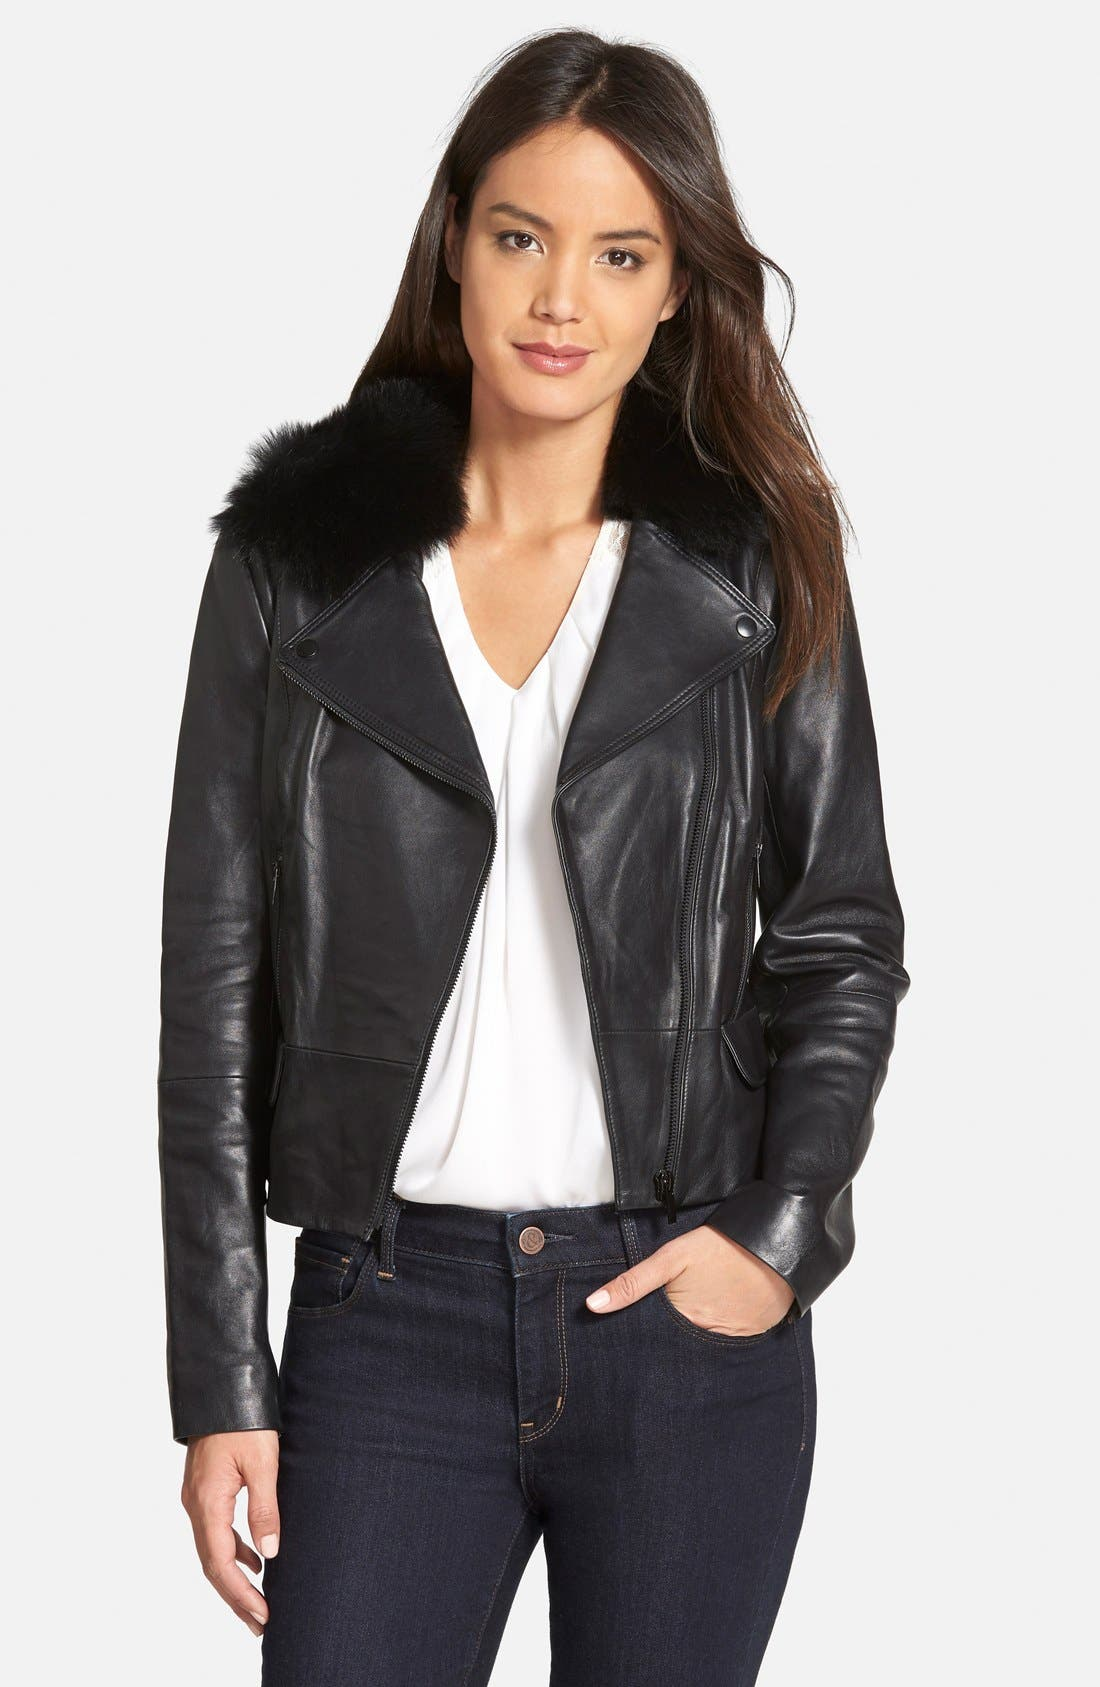 Alternate Image 1 Selected - Classiques Entier® 'Brenna' Leather Jacket with Detachable Genuine Toscana Shearling Collar (Regular & Petite)